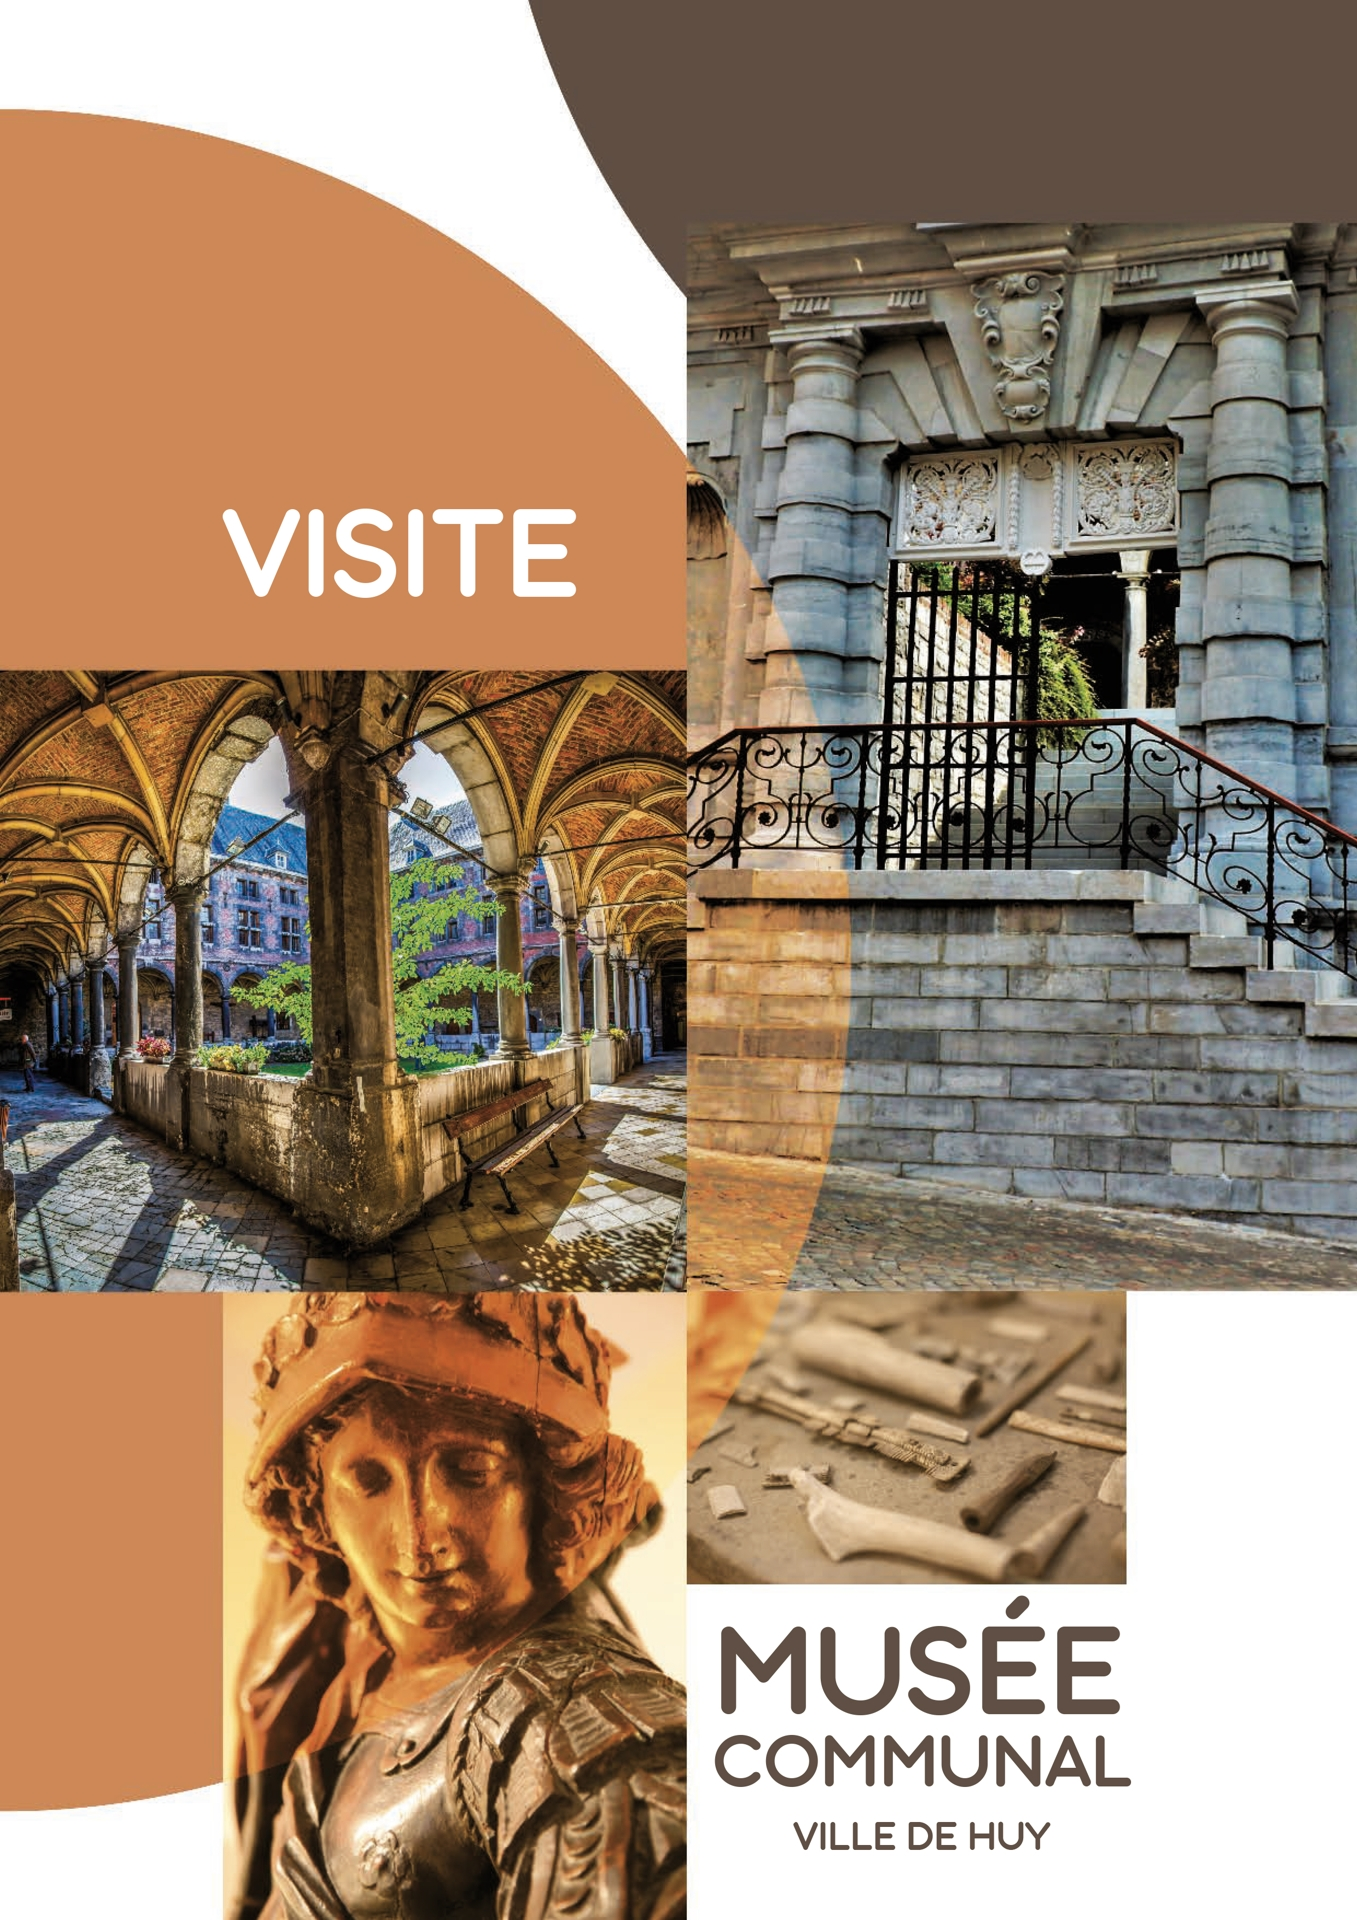 MUSEE MUSEE COMMUNAL brochure a4 visite salles COVER